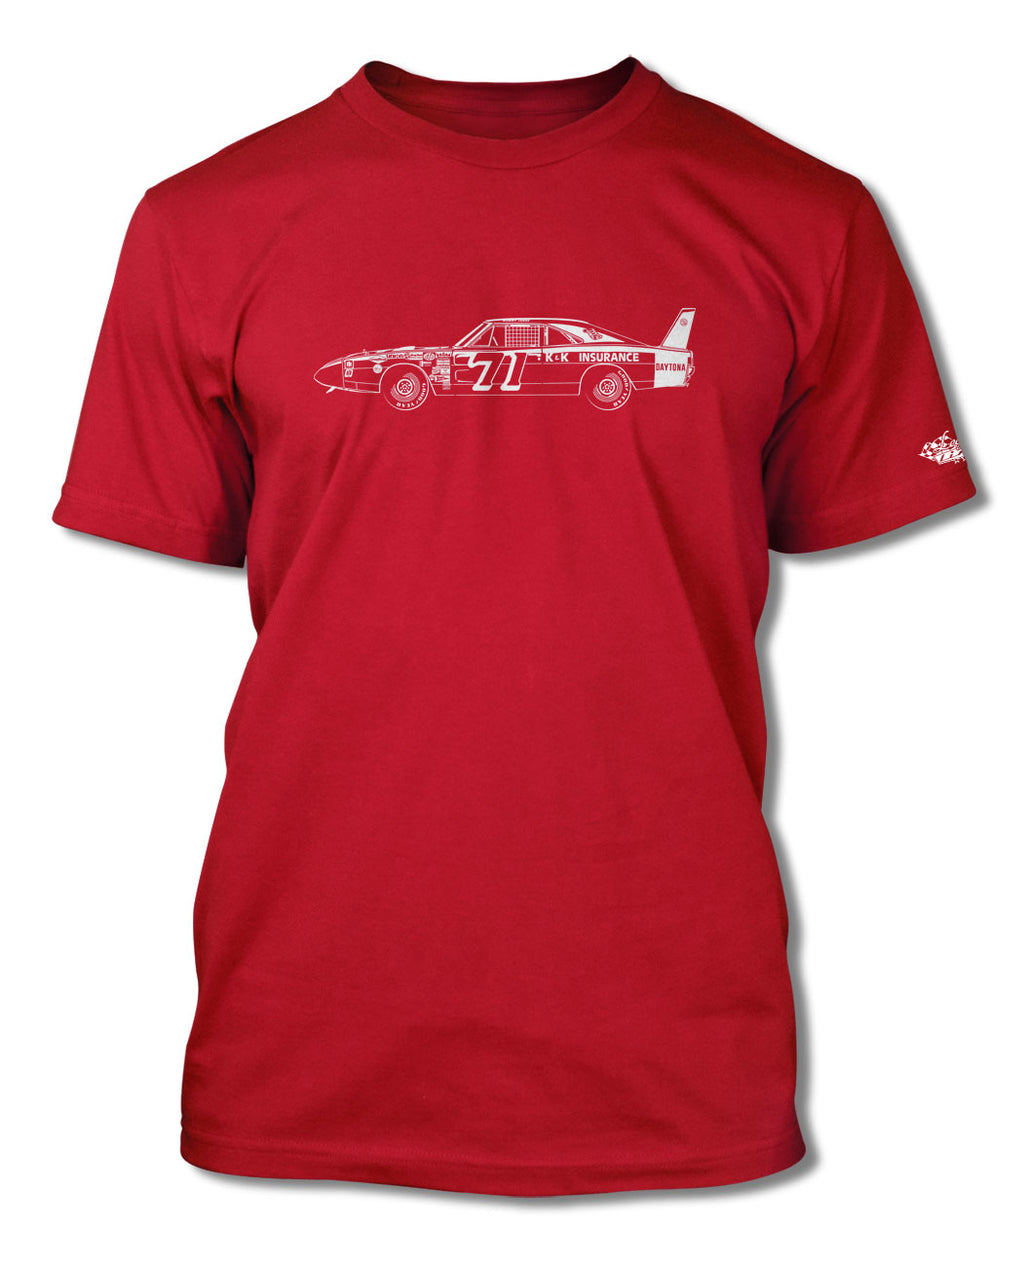 1969 Dodge Charger Daytona Bobby Issac #71 T-Shirt - Men - Side View